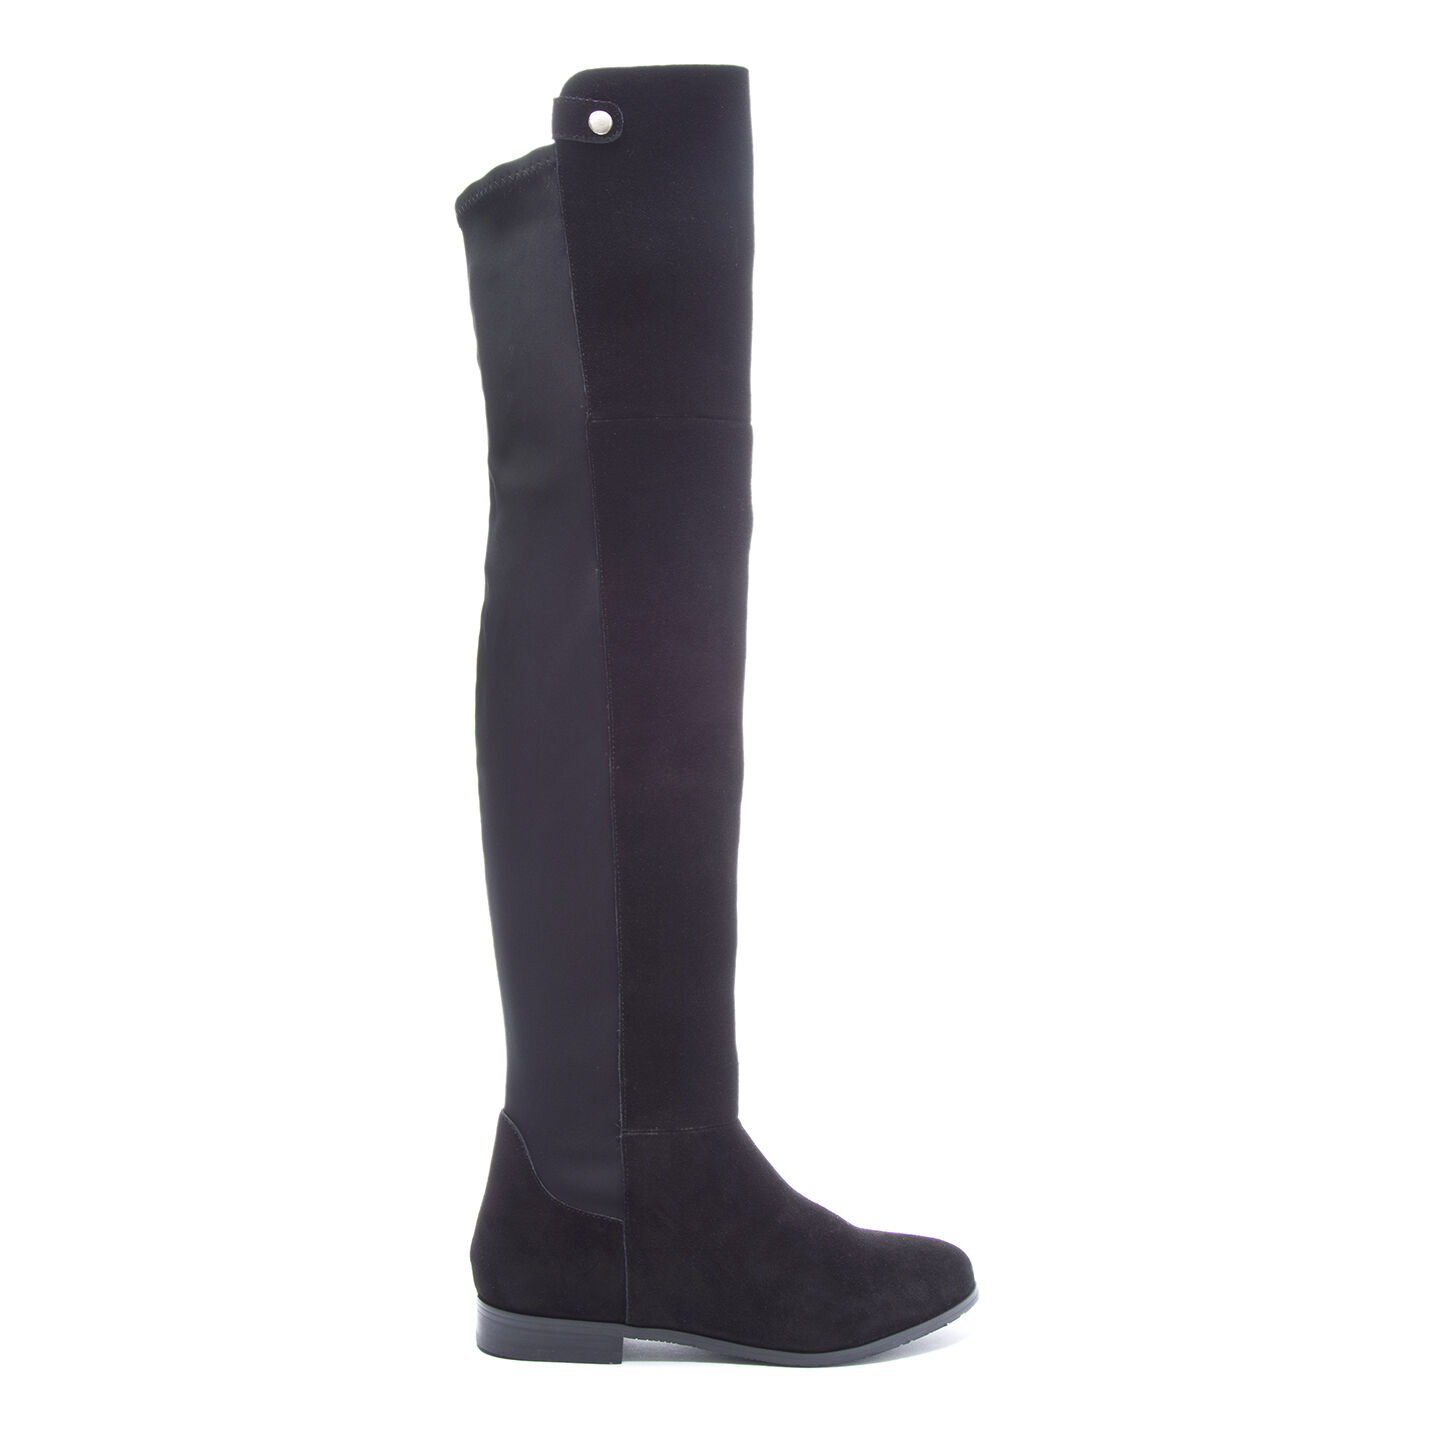 the Knee/Thigh High Suede Boots